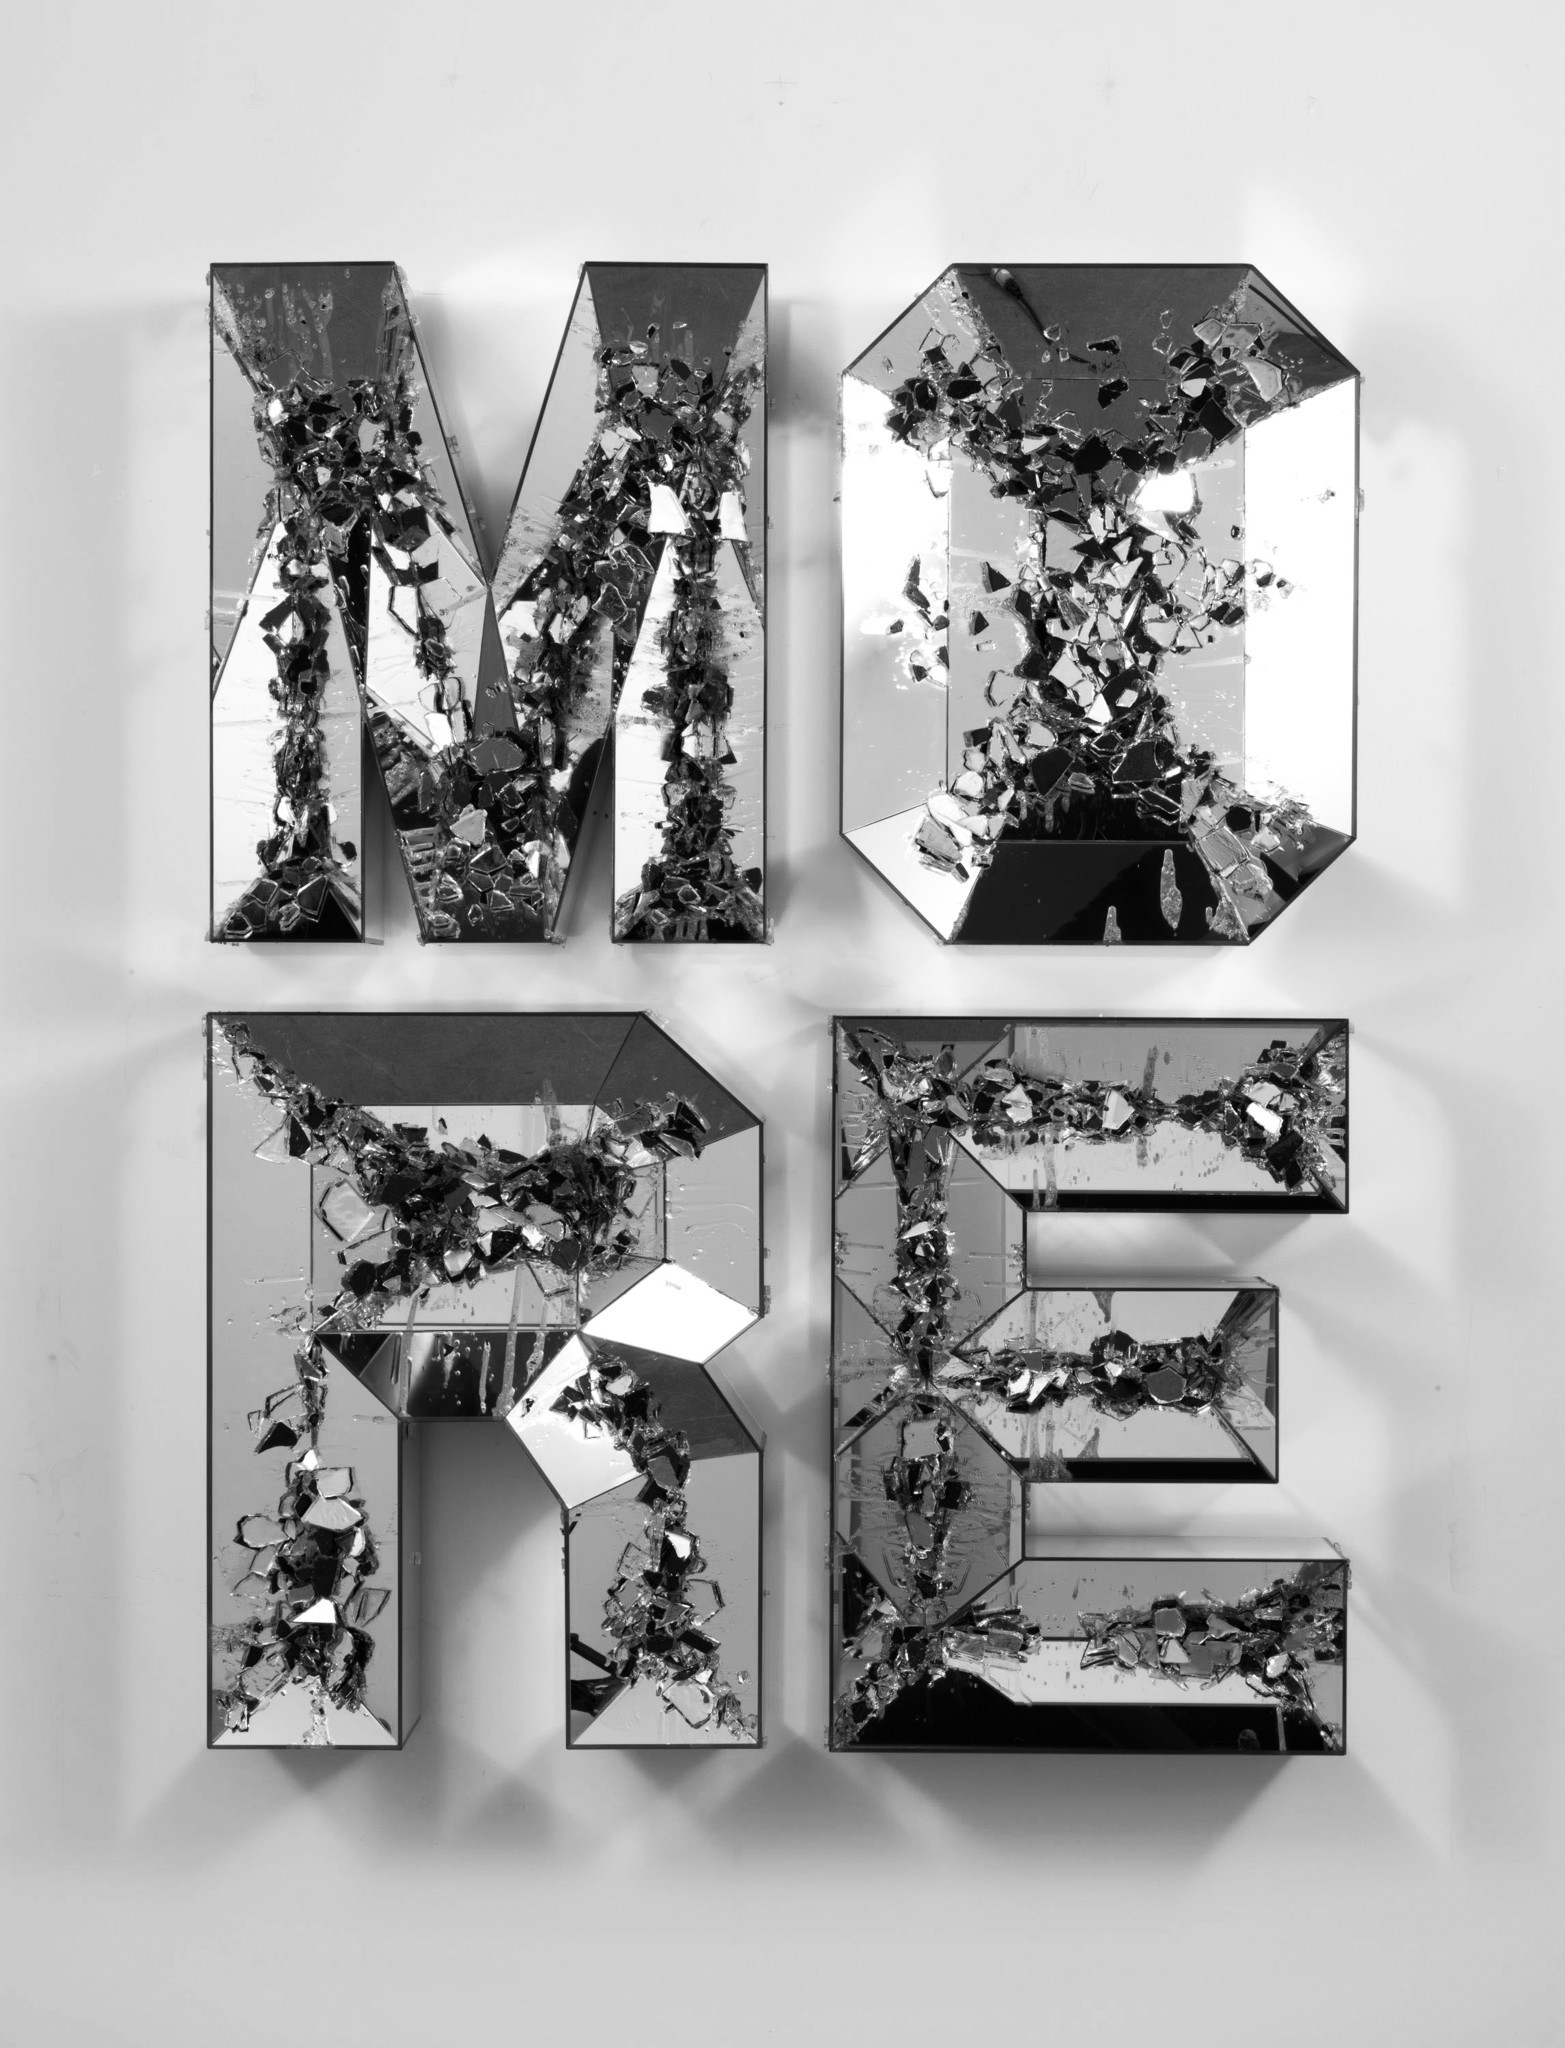 """Doug Aitken's """"More (shattered pour),"""" 2013, high-density foam, wood, mirror, 63 inches by 48 1/2 inches by 7 1/2  inches."""